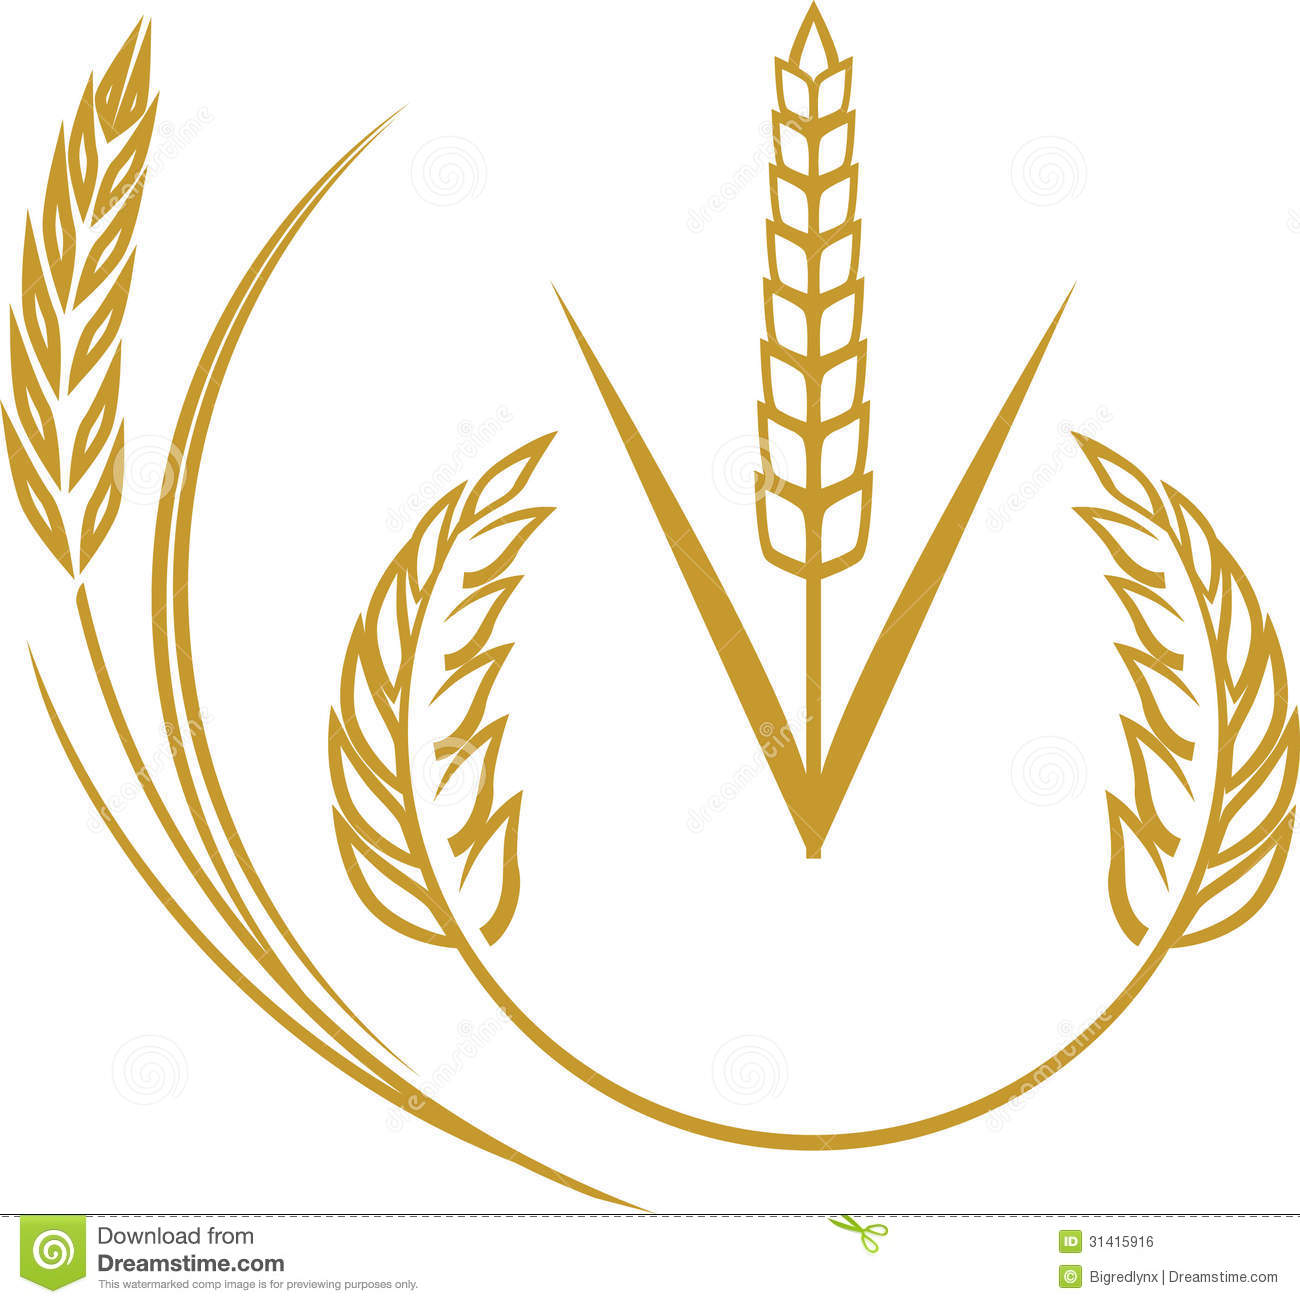 Wheat Harvest Black And White Clipart - Clipart Kid